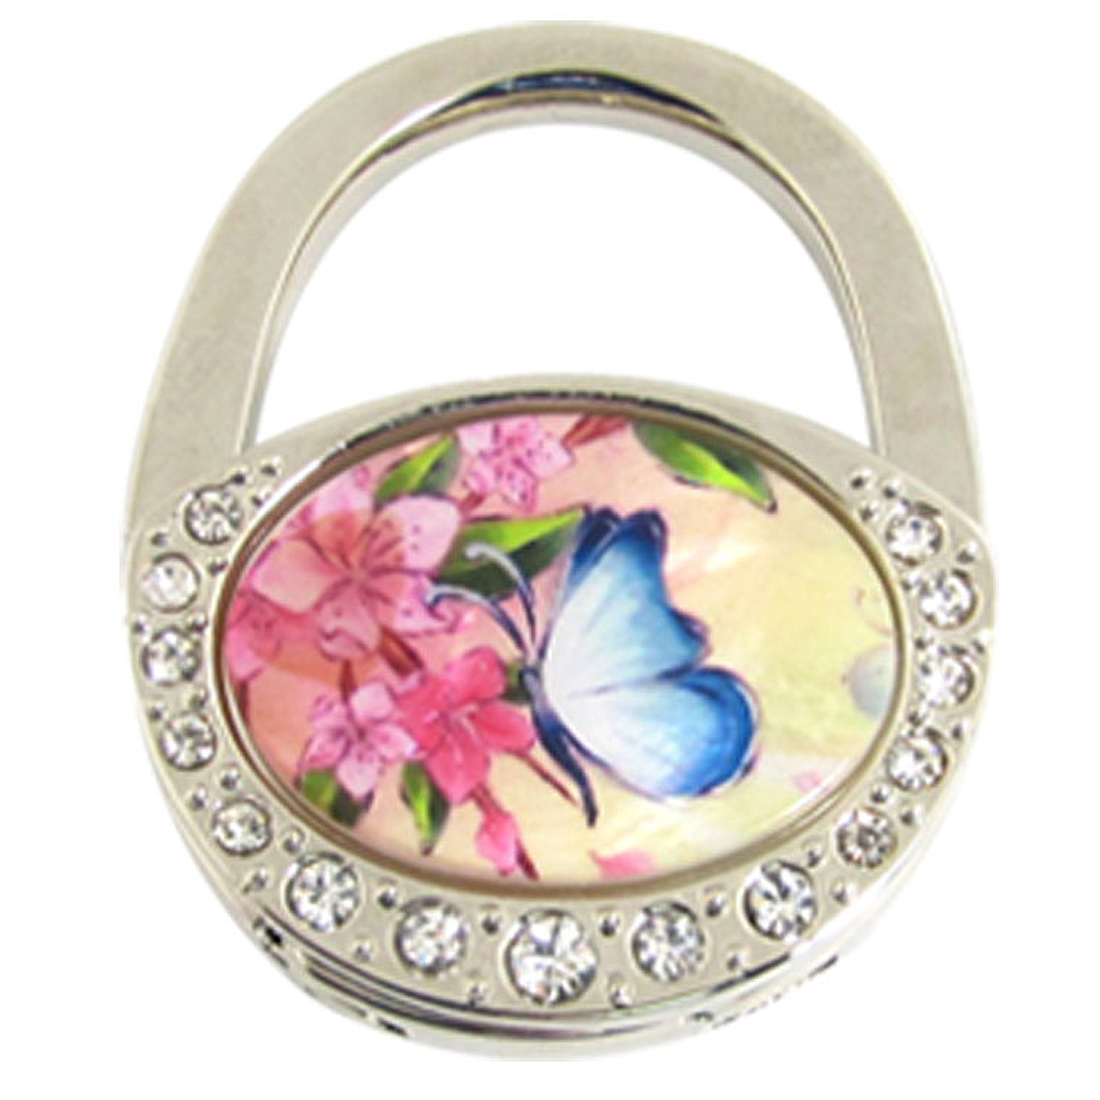 Padlock Shaped Rhinestone Decor Flower Pattern Hook for Handbag